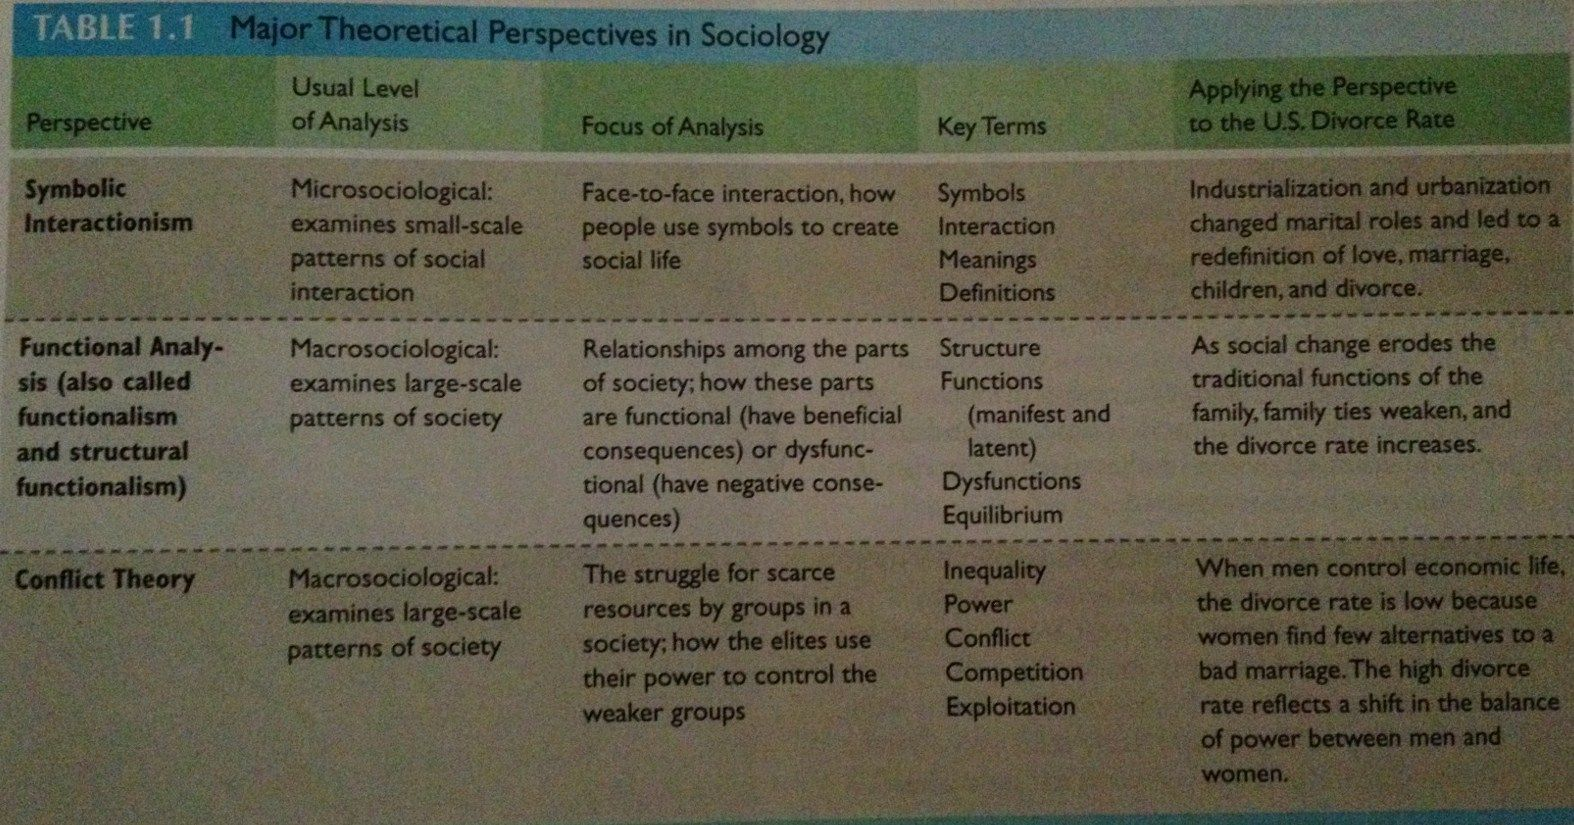 an analysis of a sociological perspective to health and illness A growing area in sociology investigates the social causes and consequences of mental health and illness the social causes of mental illness have included disadvantaged social statuses and stress social stress theory became prominent in the 1980s and continues to guide many sociological studies .